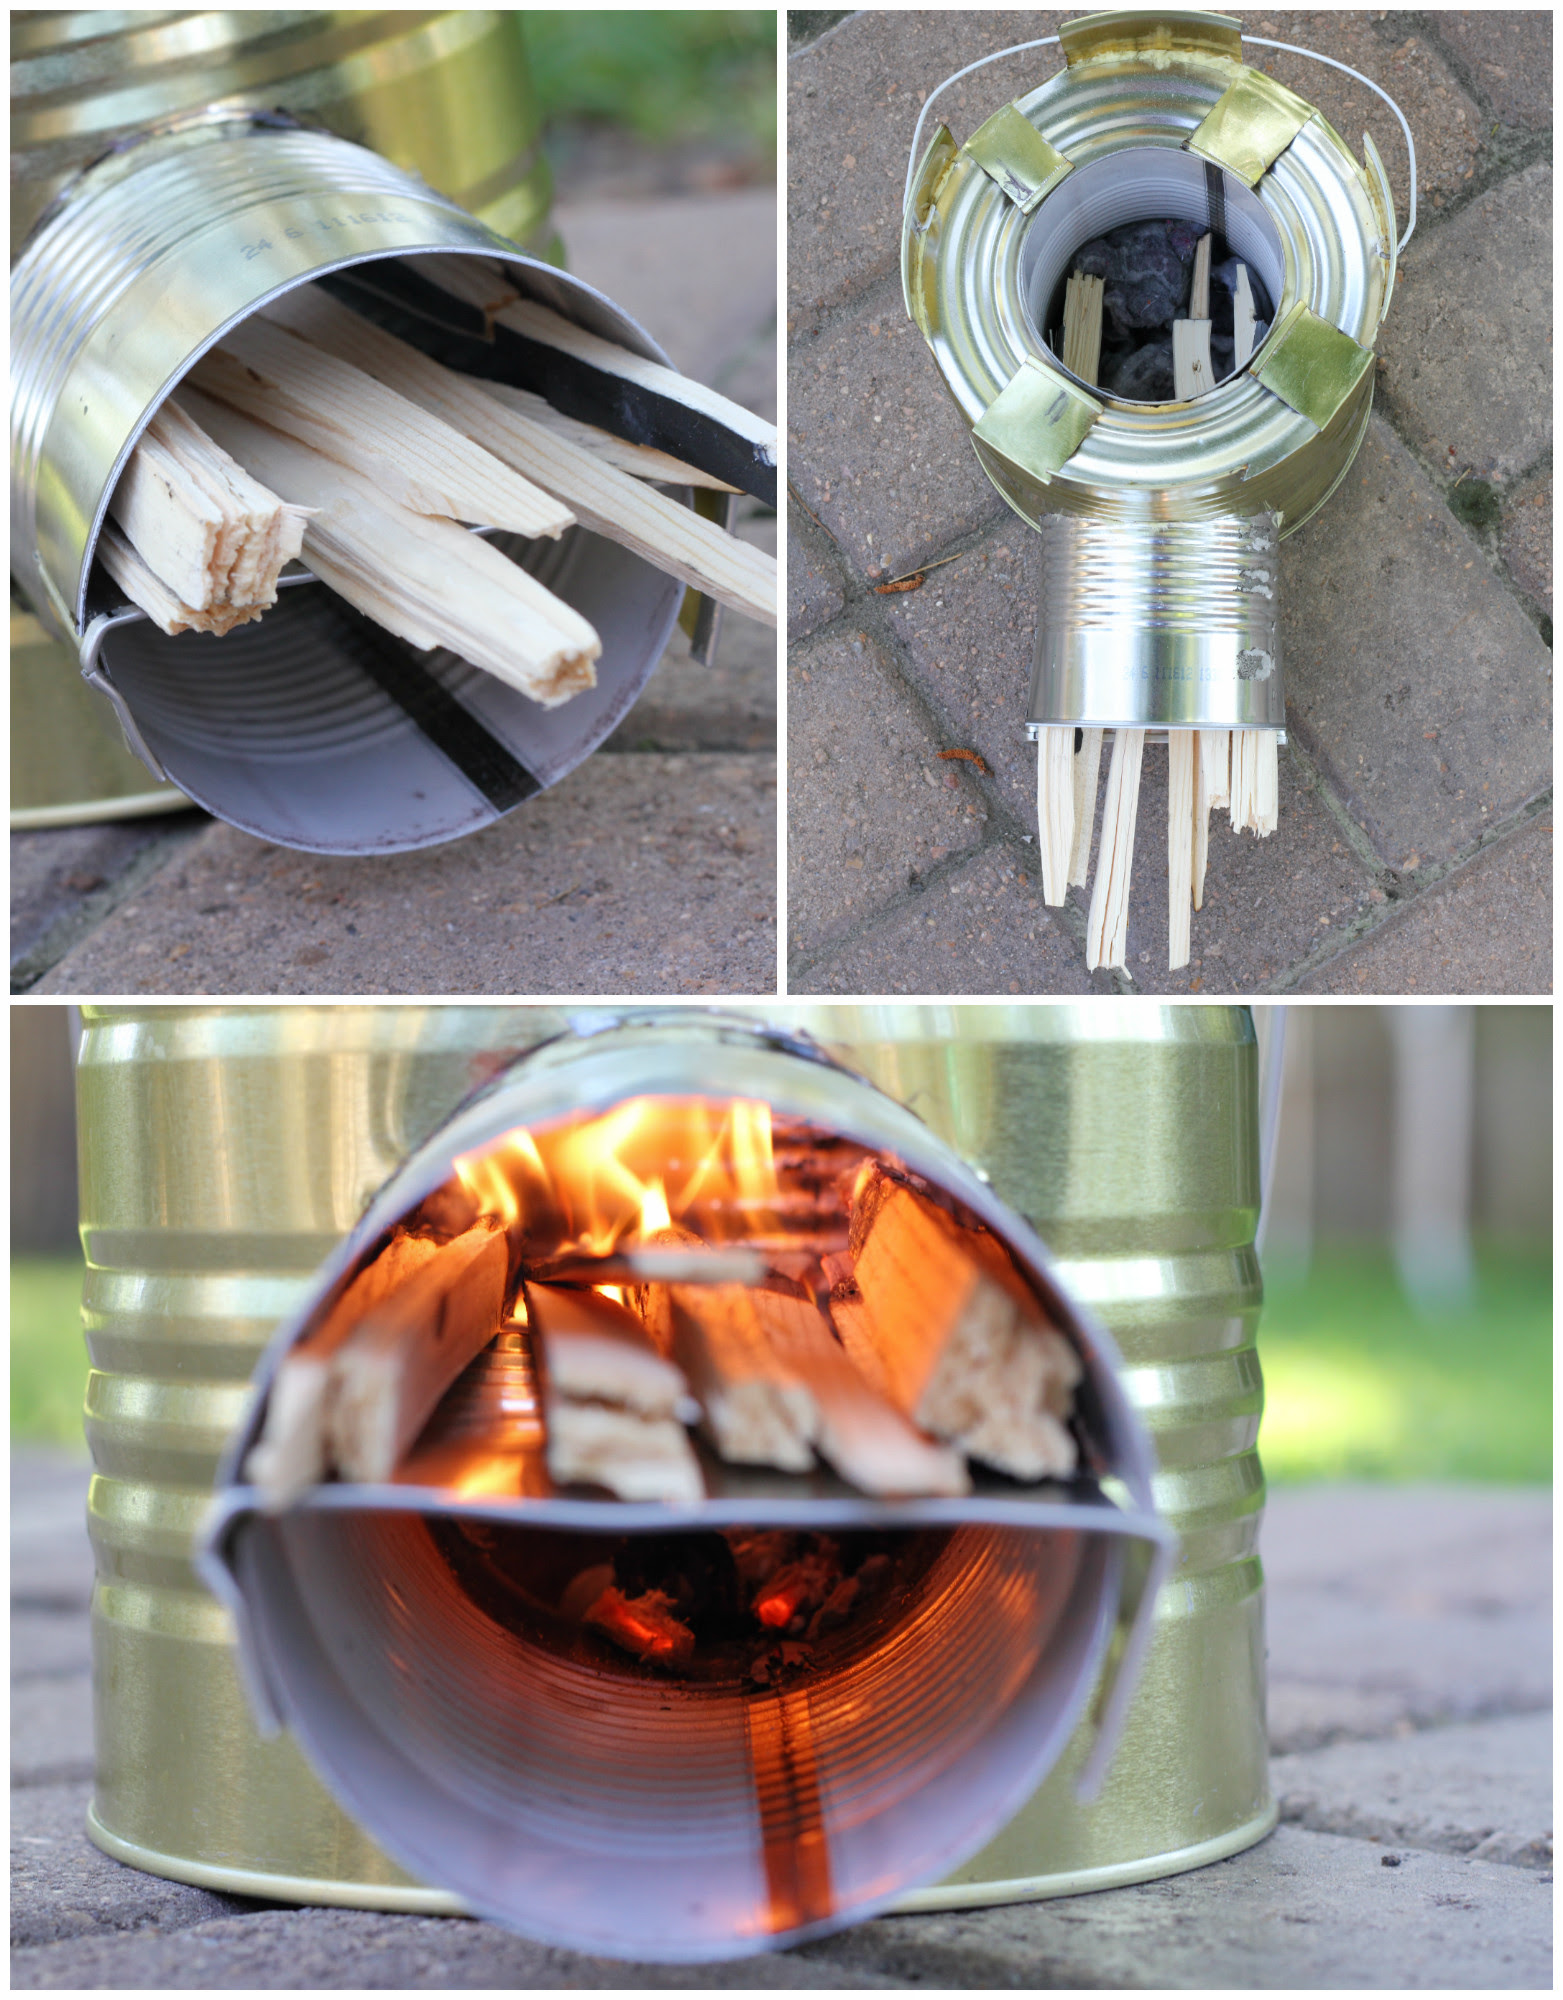 Construir un Rocket Stove-Una de las mejores y más eficientes maneras de cocinar en una emergencia! www.Prepared-Housewives.com alternativecooking # # # offgridcooking powerlesscooking